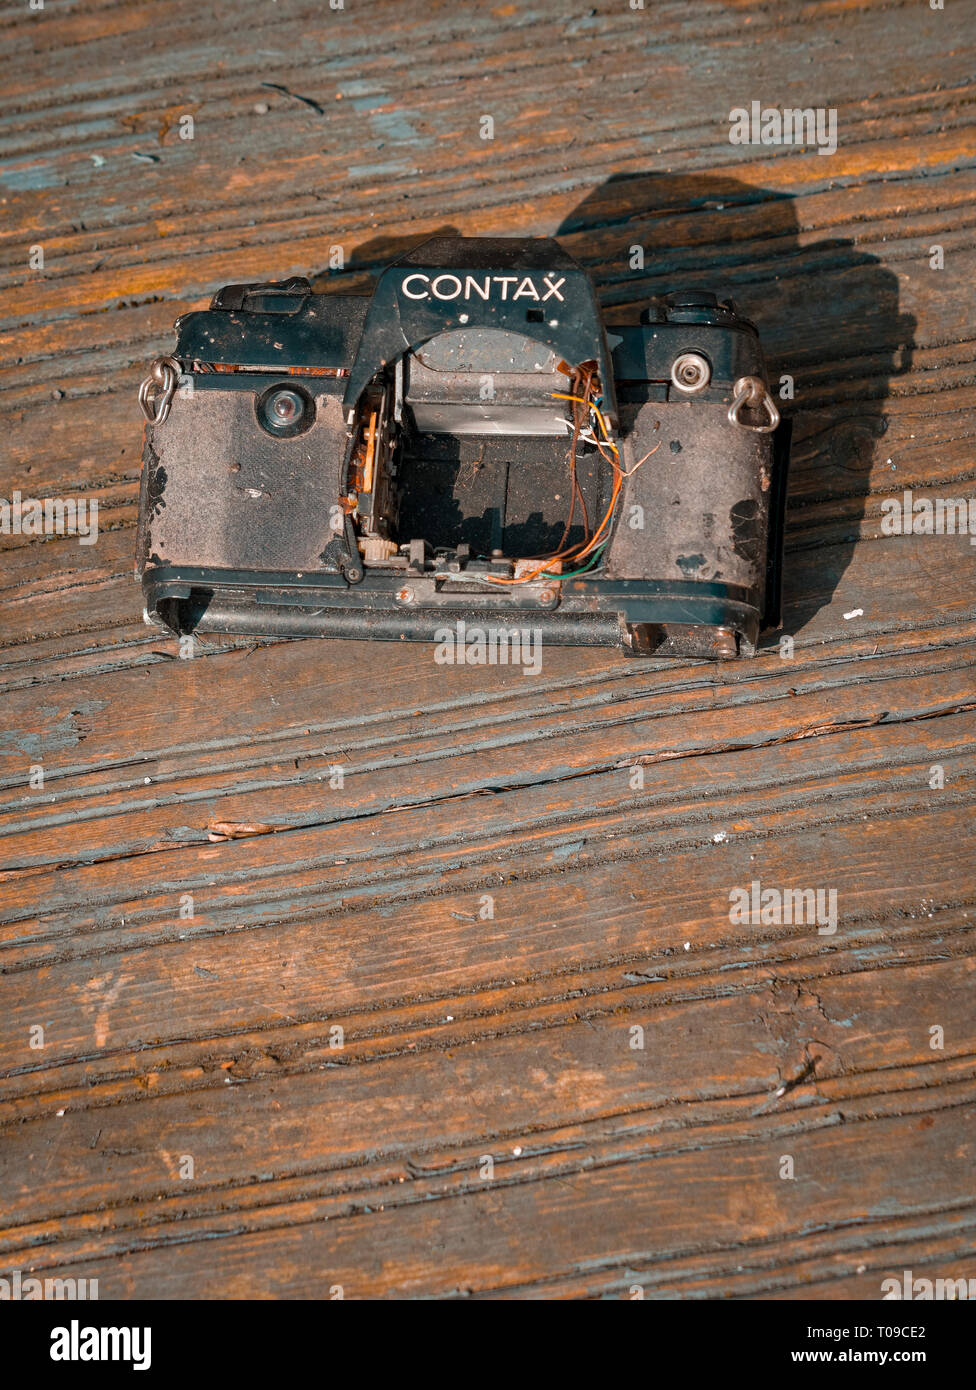 Front view of an old and broken Contax 35mm Film camera, Contax was a German company founded in 1932 - Stock Image